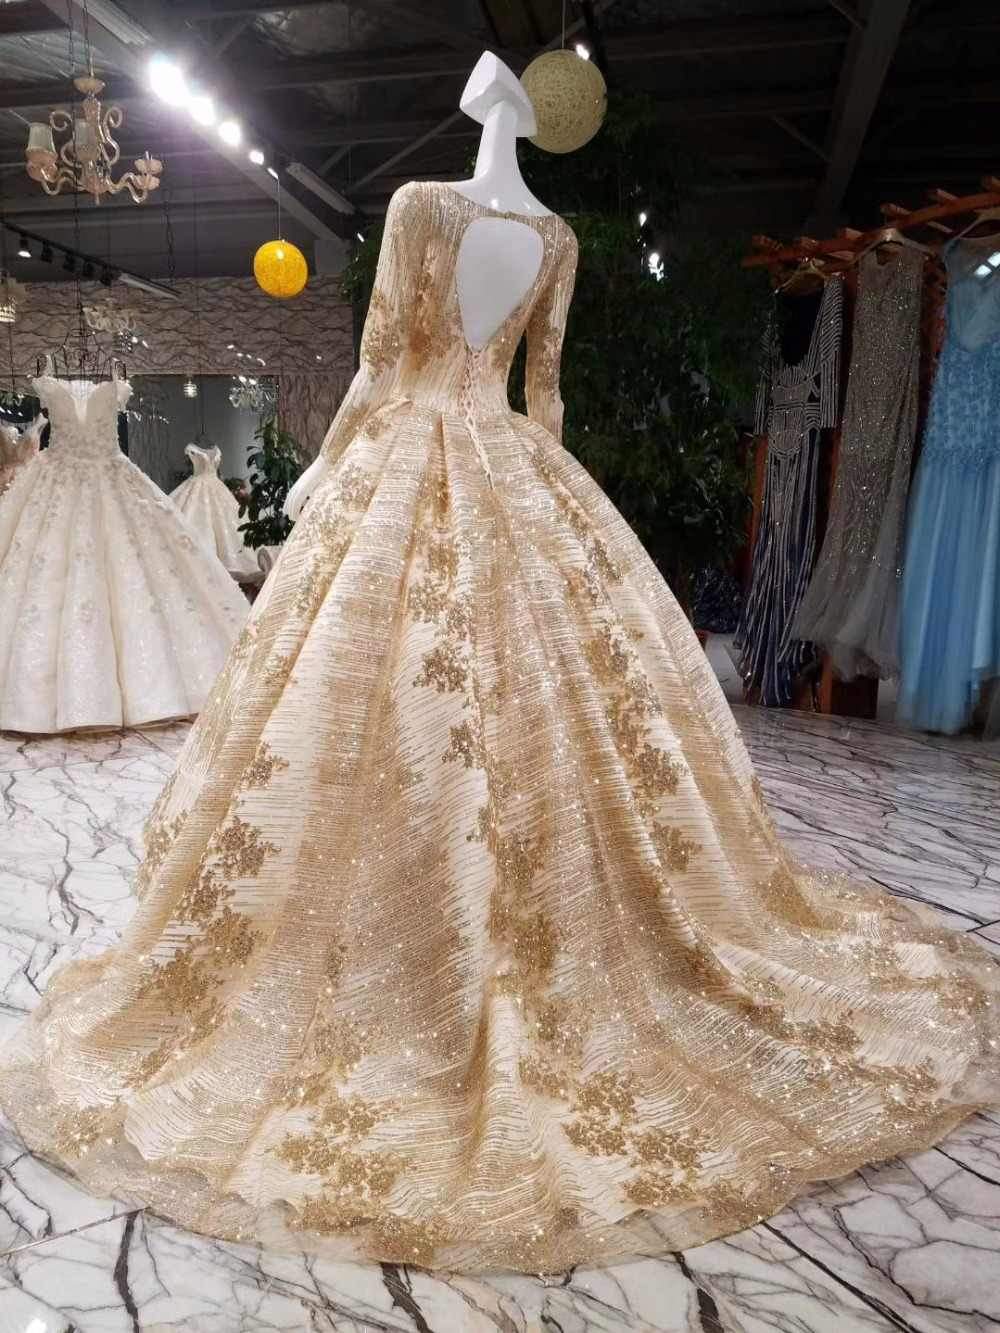 Gold Wedding Dresses.Aolanes Luxury Lace Crystals Appliques Arabic Champagne Gold Wedding Dresses Red Gold Bridal Gown 2018 Long Train Bridal Dresses